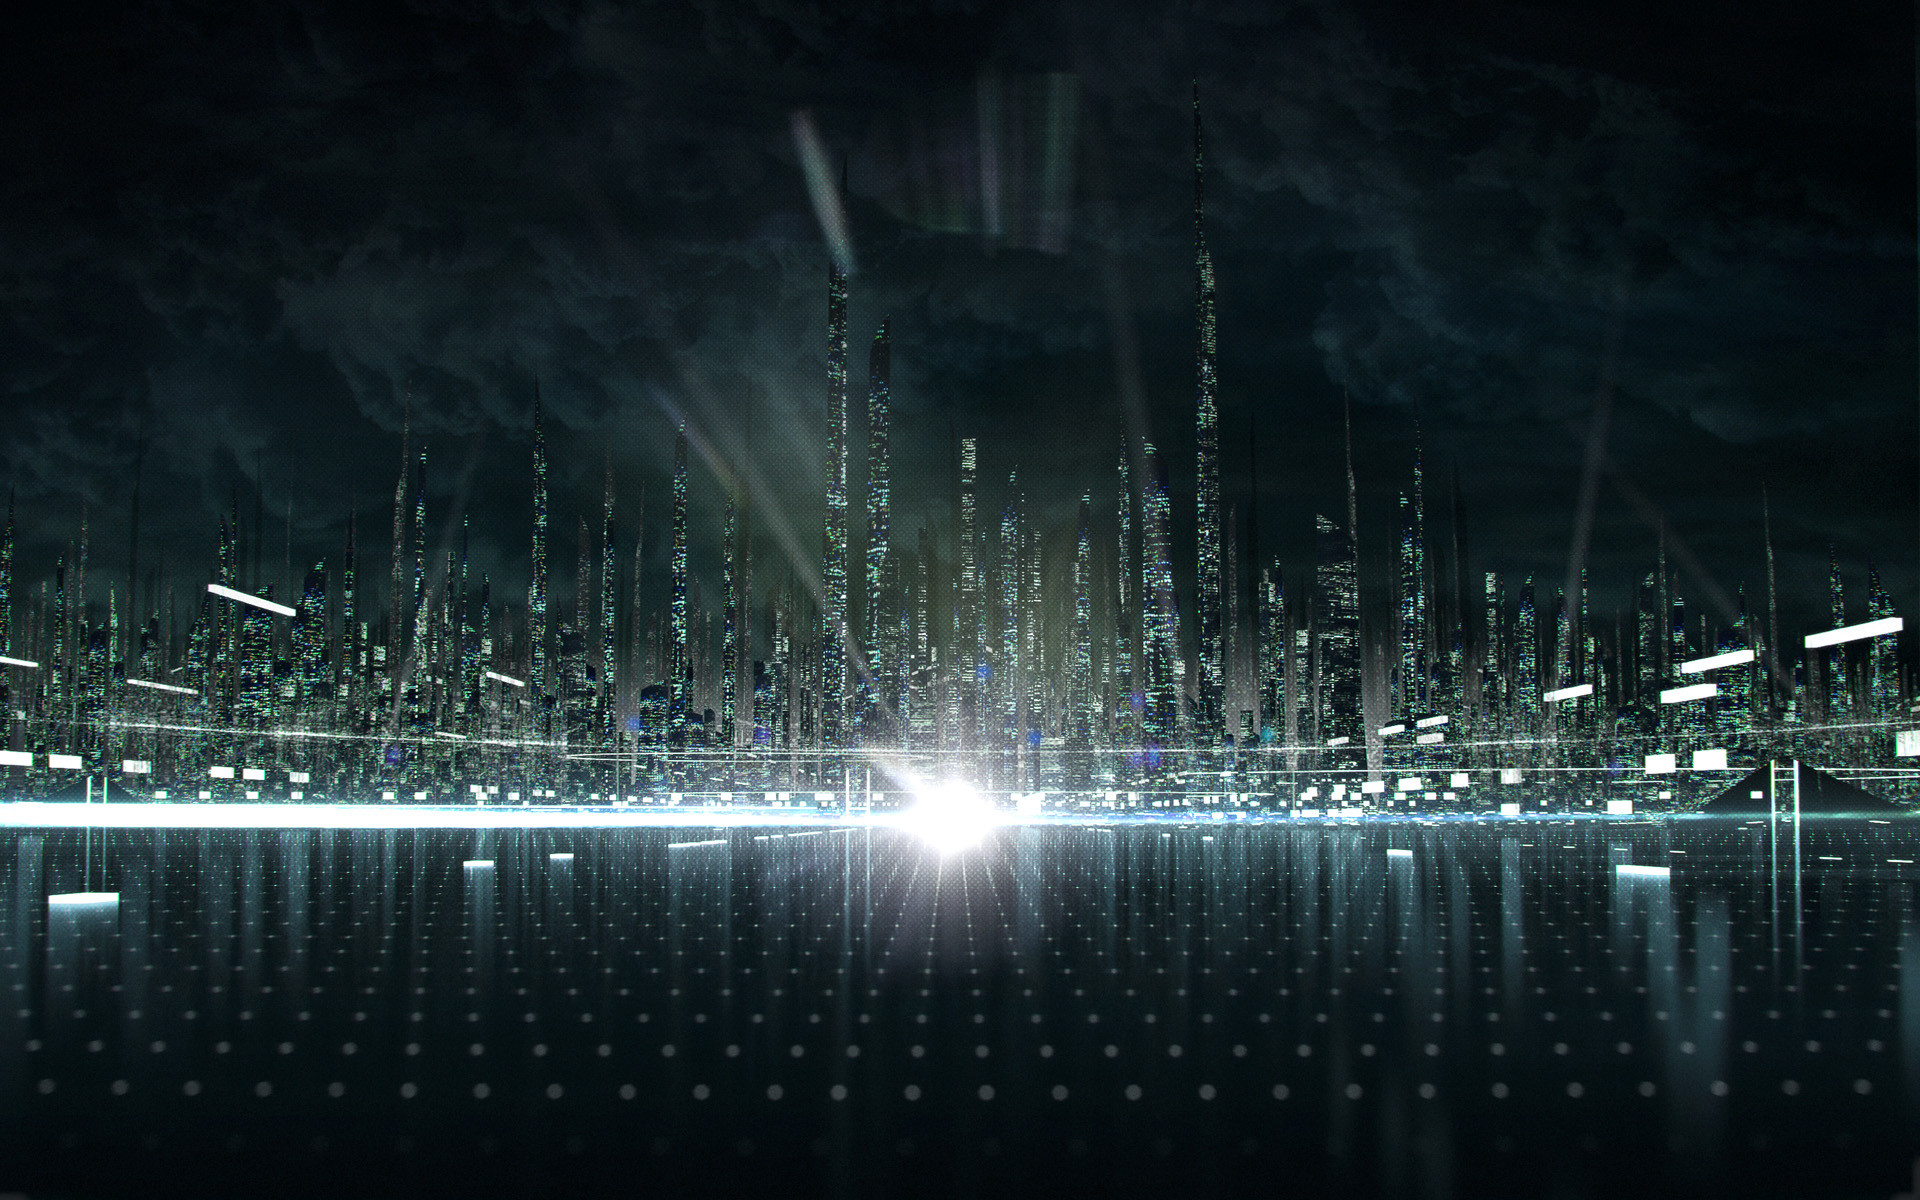 1920x1200 Tron City from Disney's Tron: Legacy Movie Desktop Wallpaper